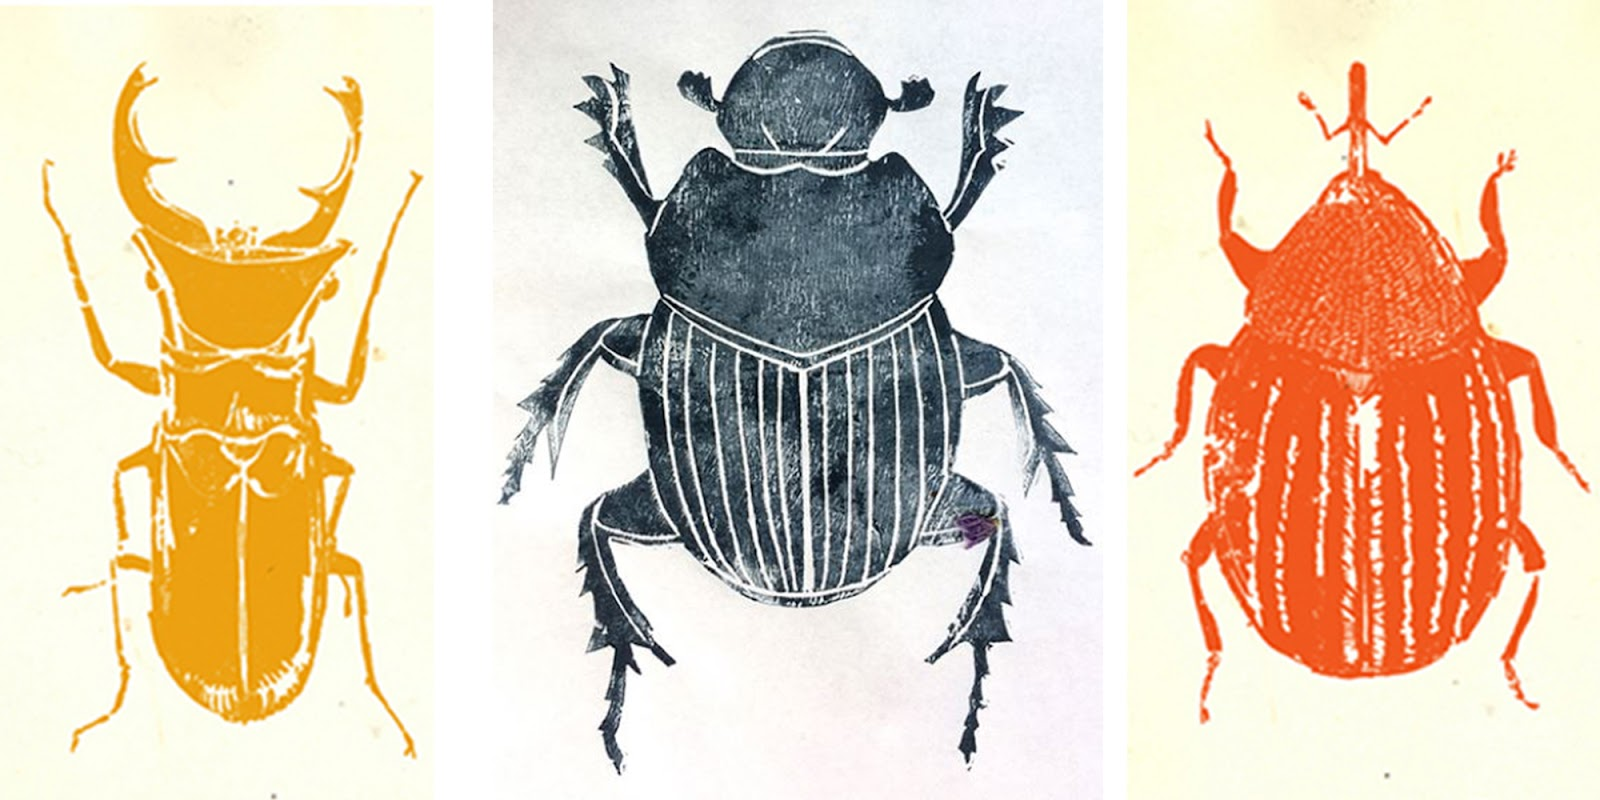 Ink prints of several different beetles